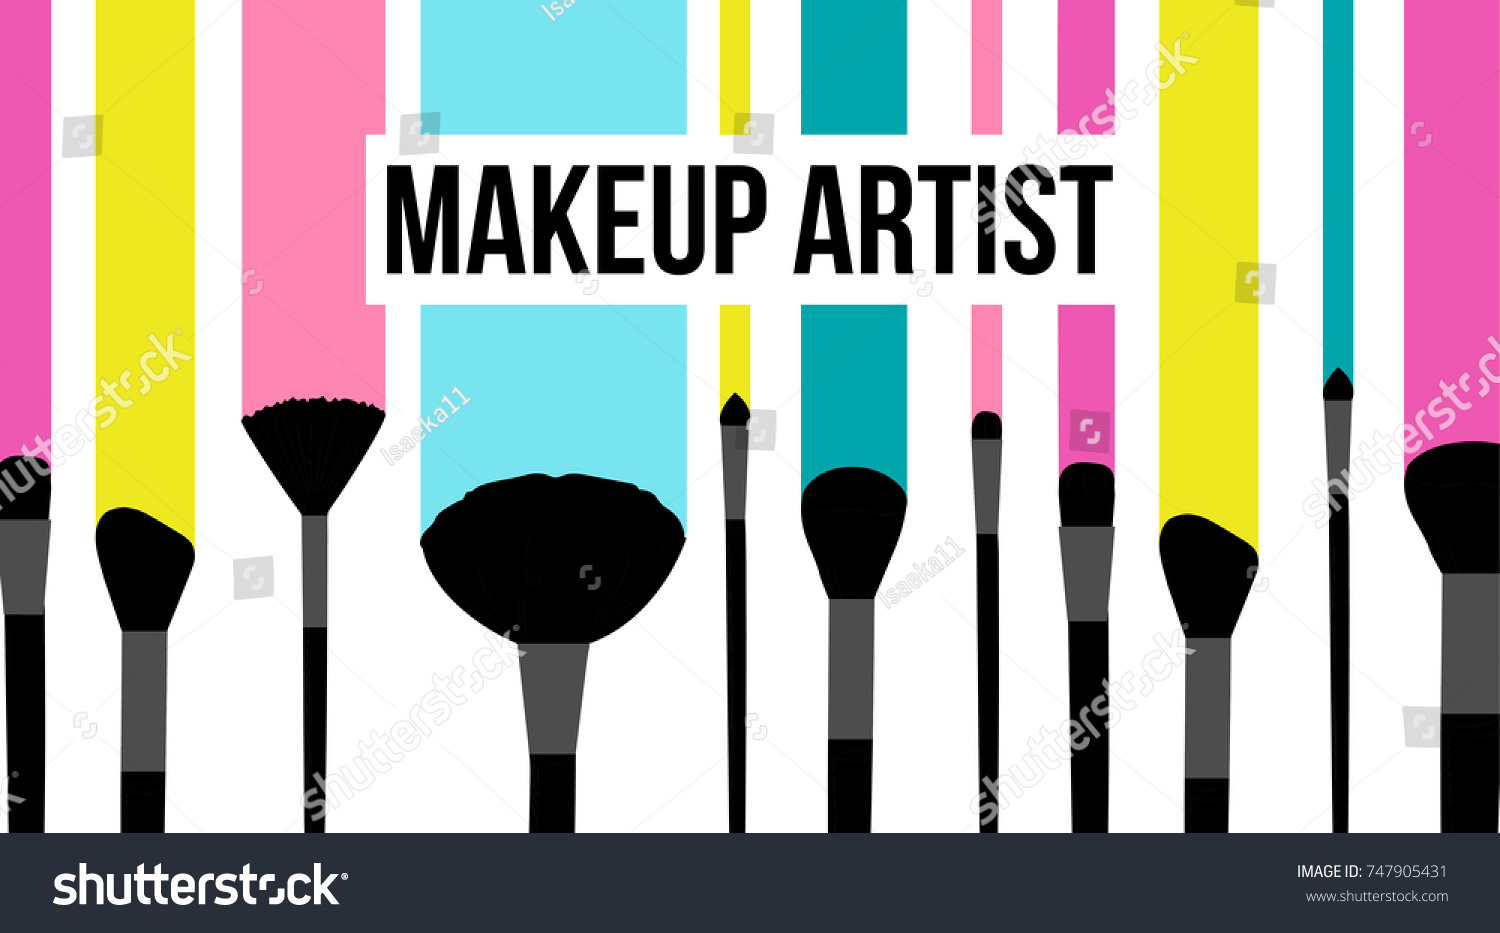 Makeup artist template business card colorful stock vector royalty makeup artist template business card colorful striped background with fashion silhouette of black makeup brushes reheart Choice Image